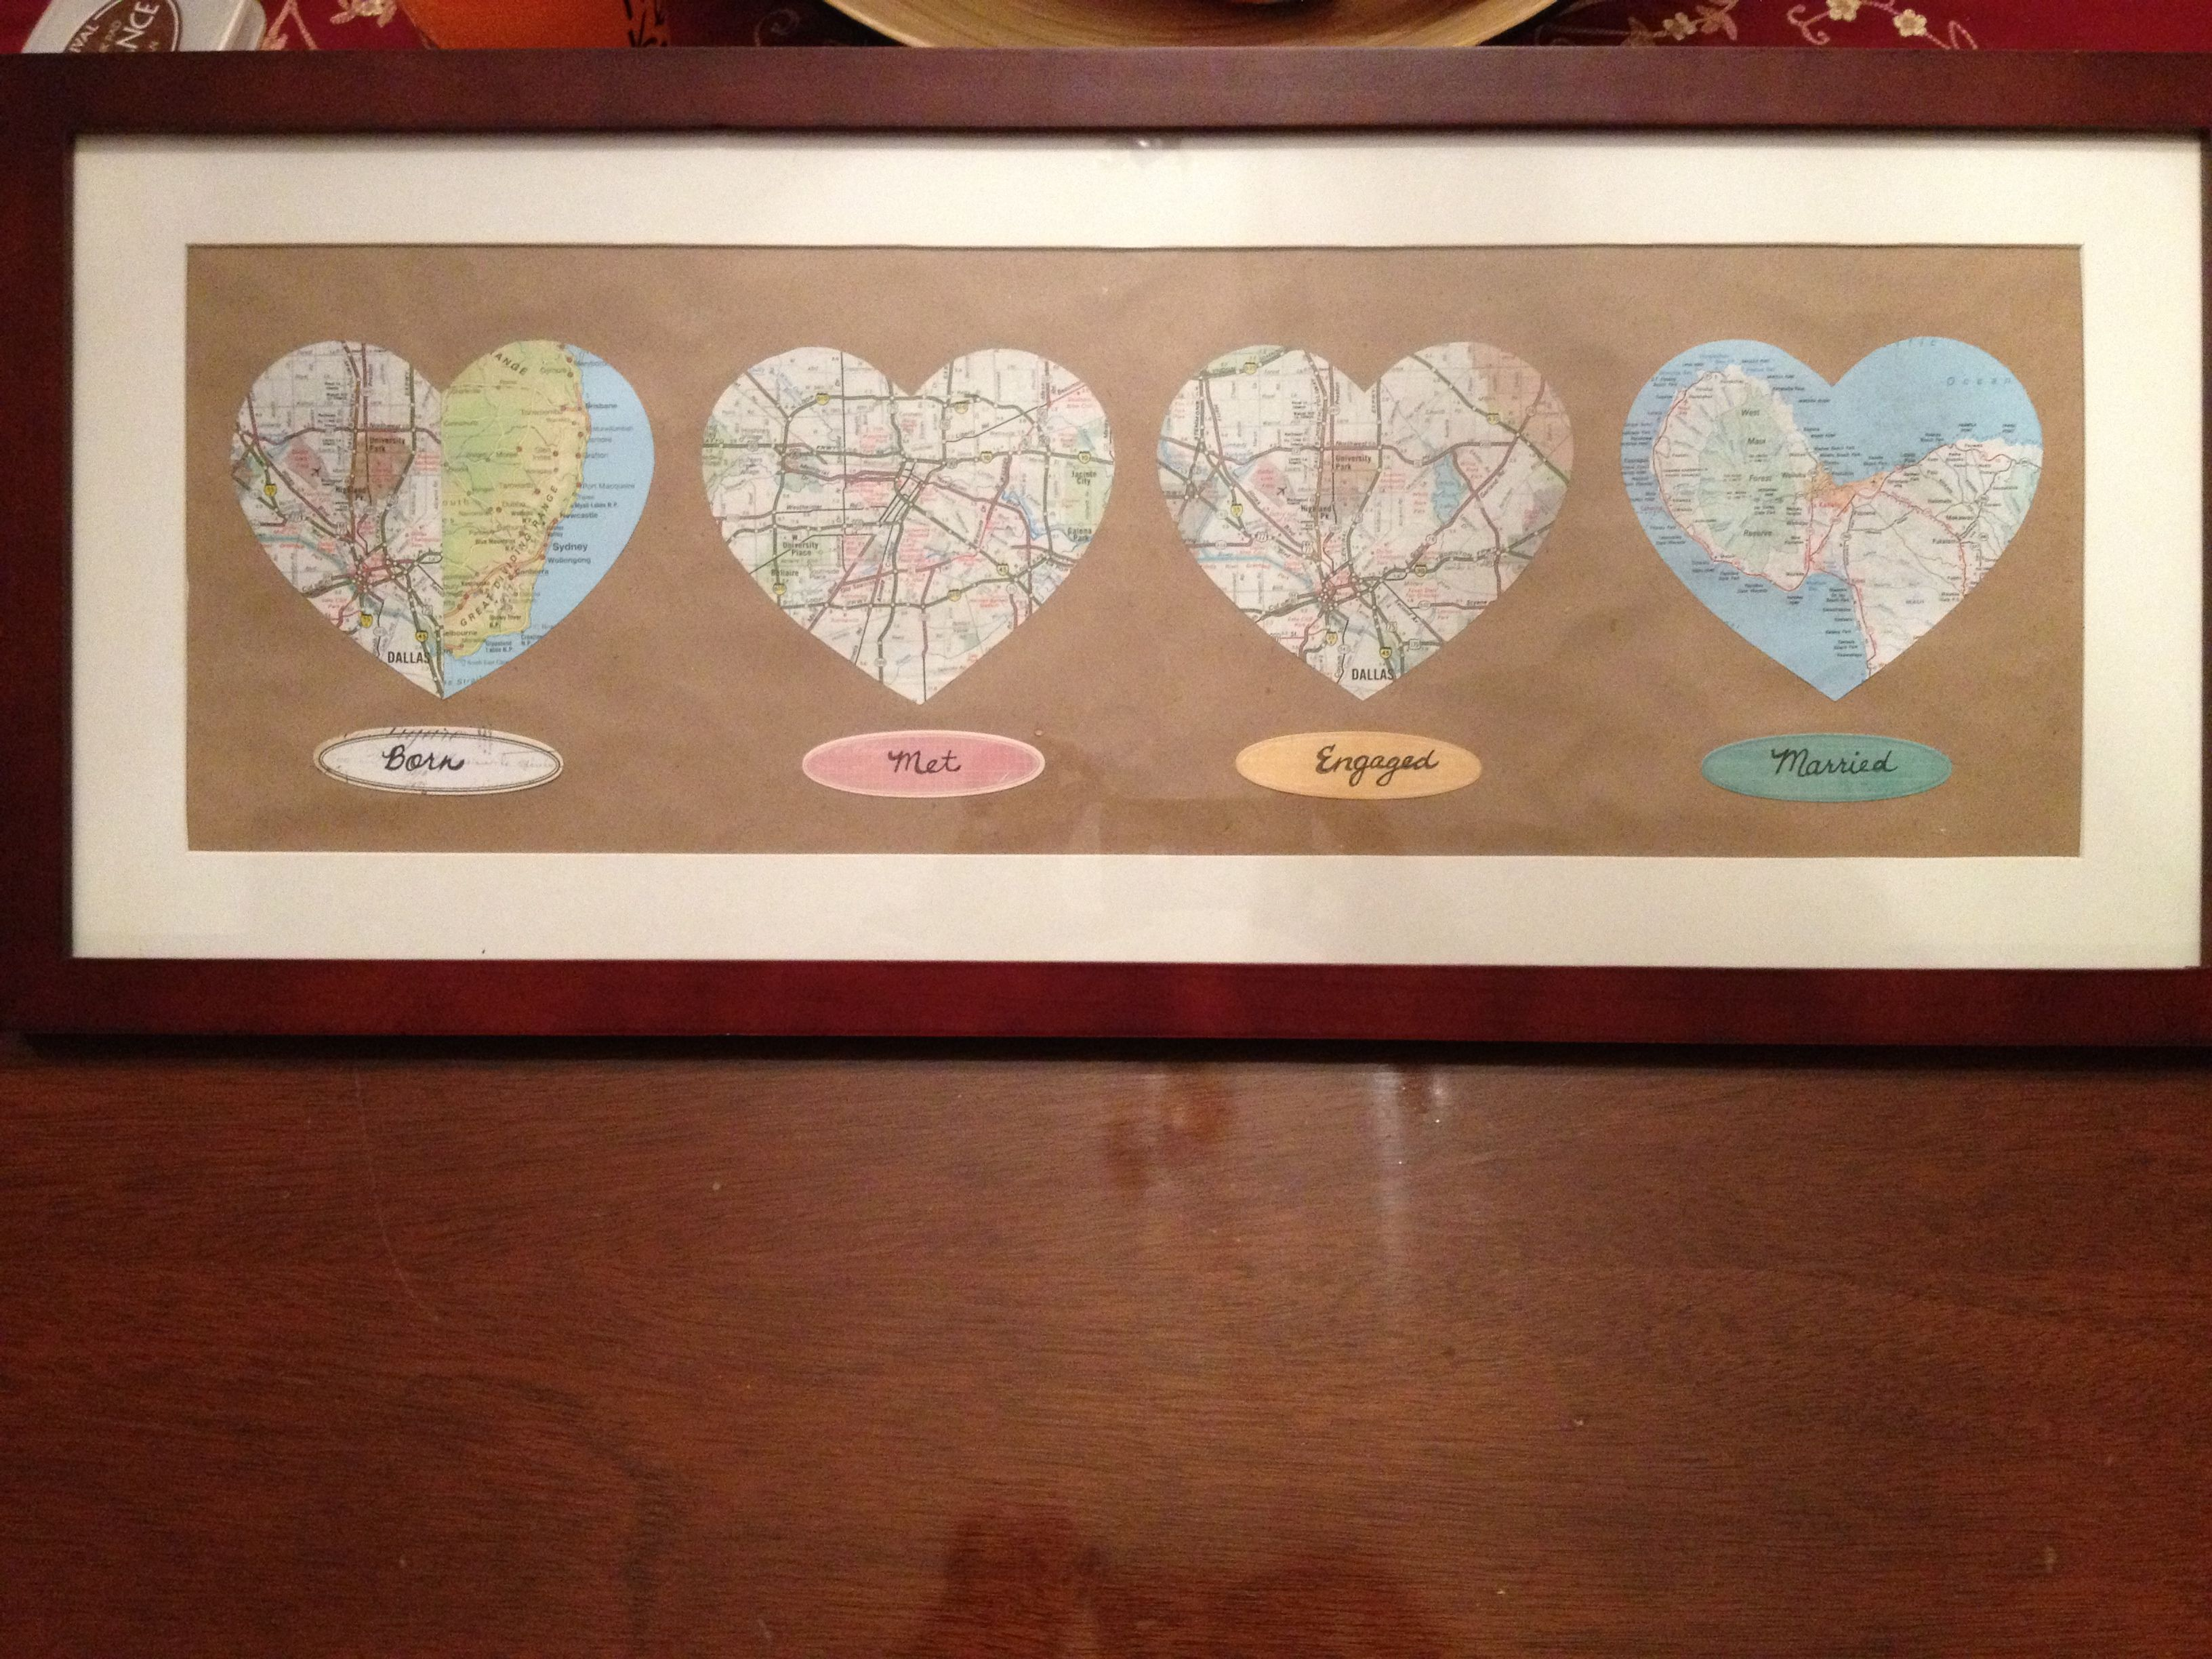 Wedding Gifts For Military Couples: Born, Met, Engaged, Married Map Cutouts For The Bride